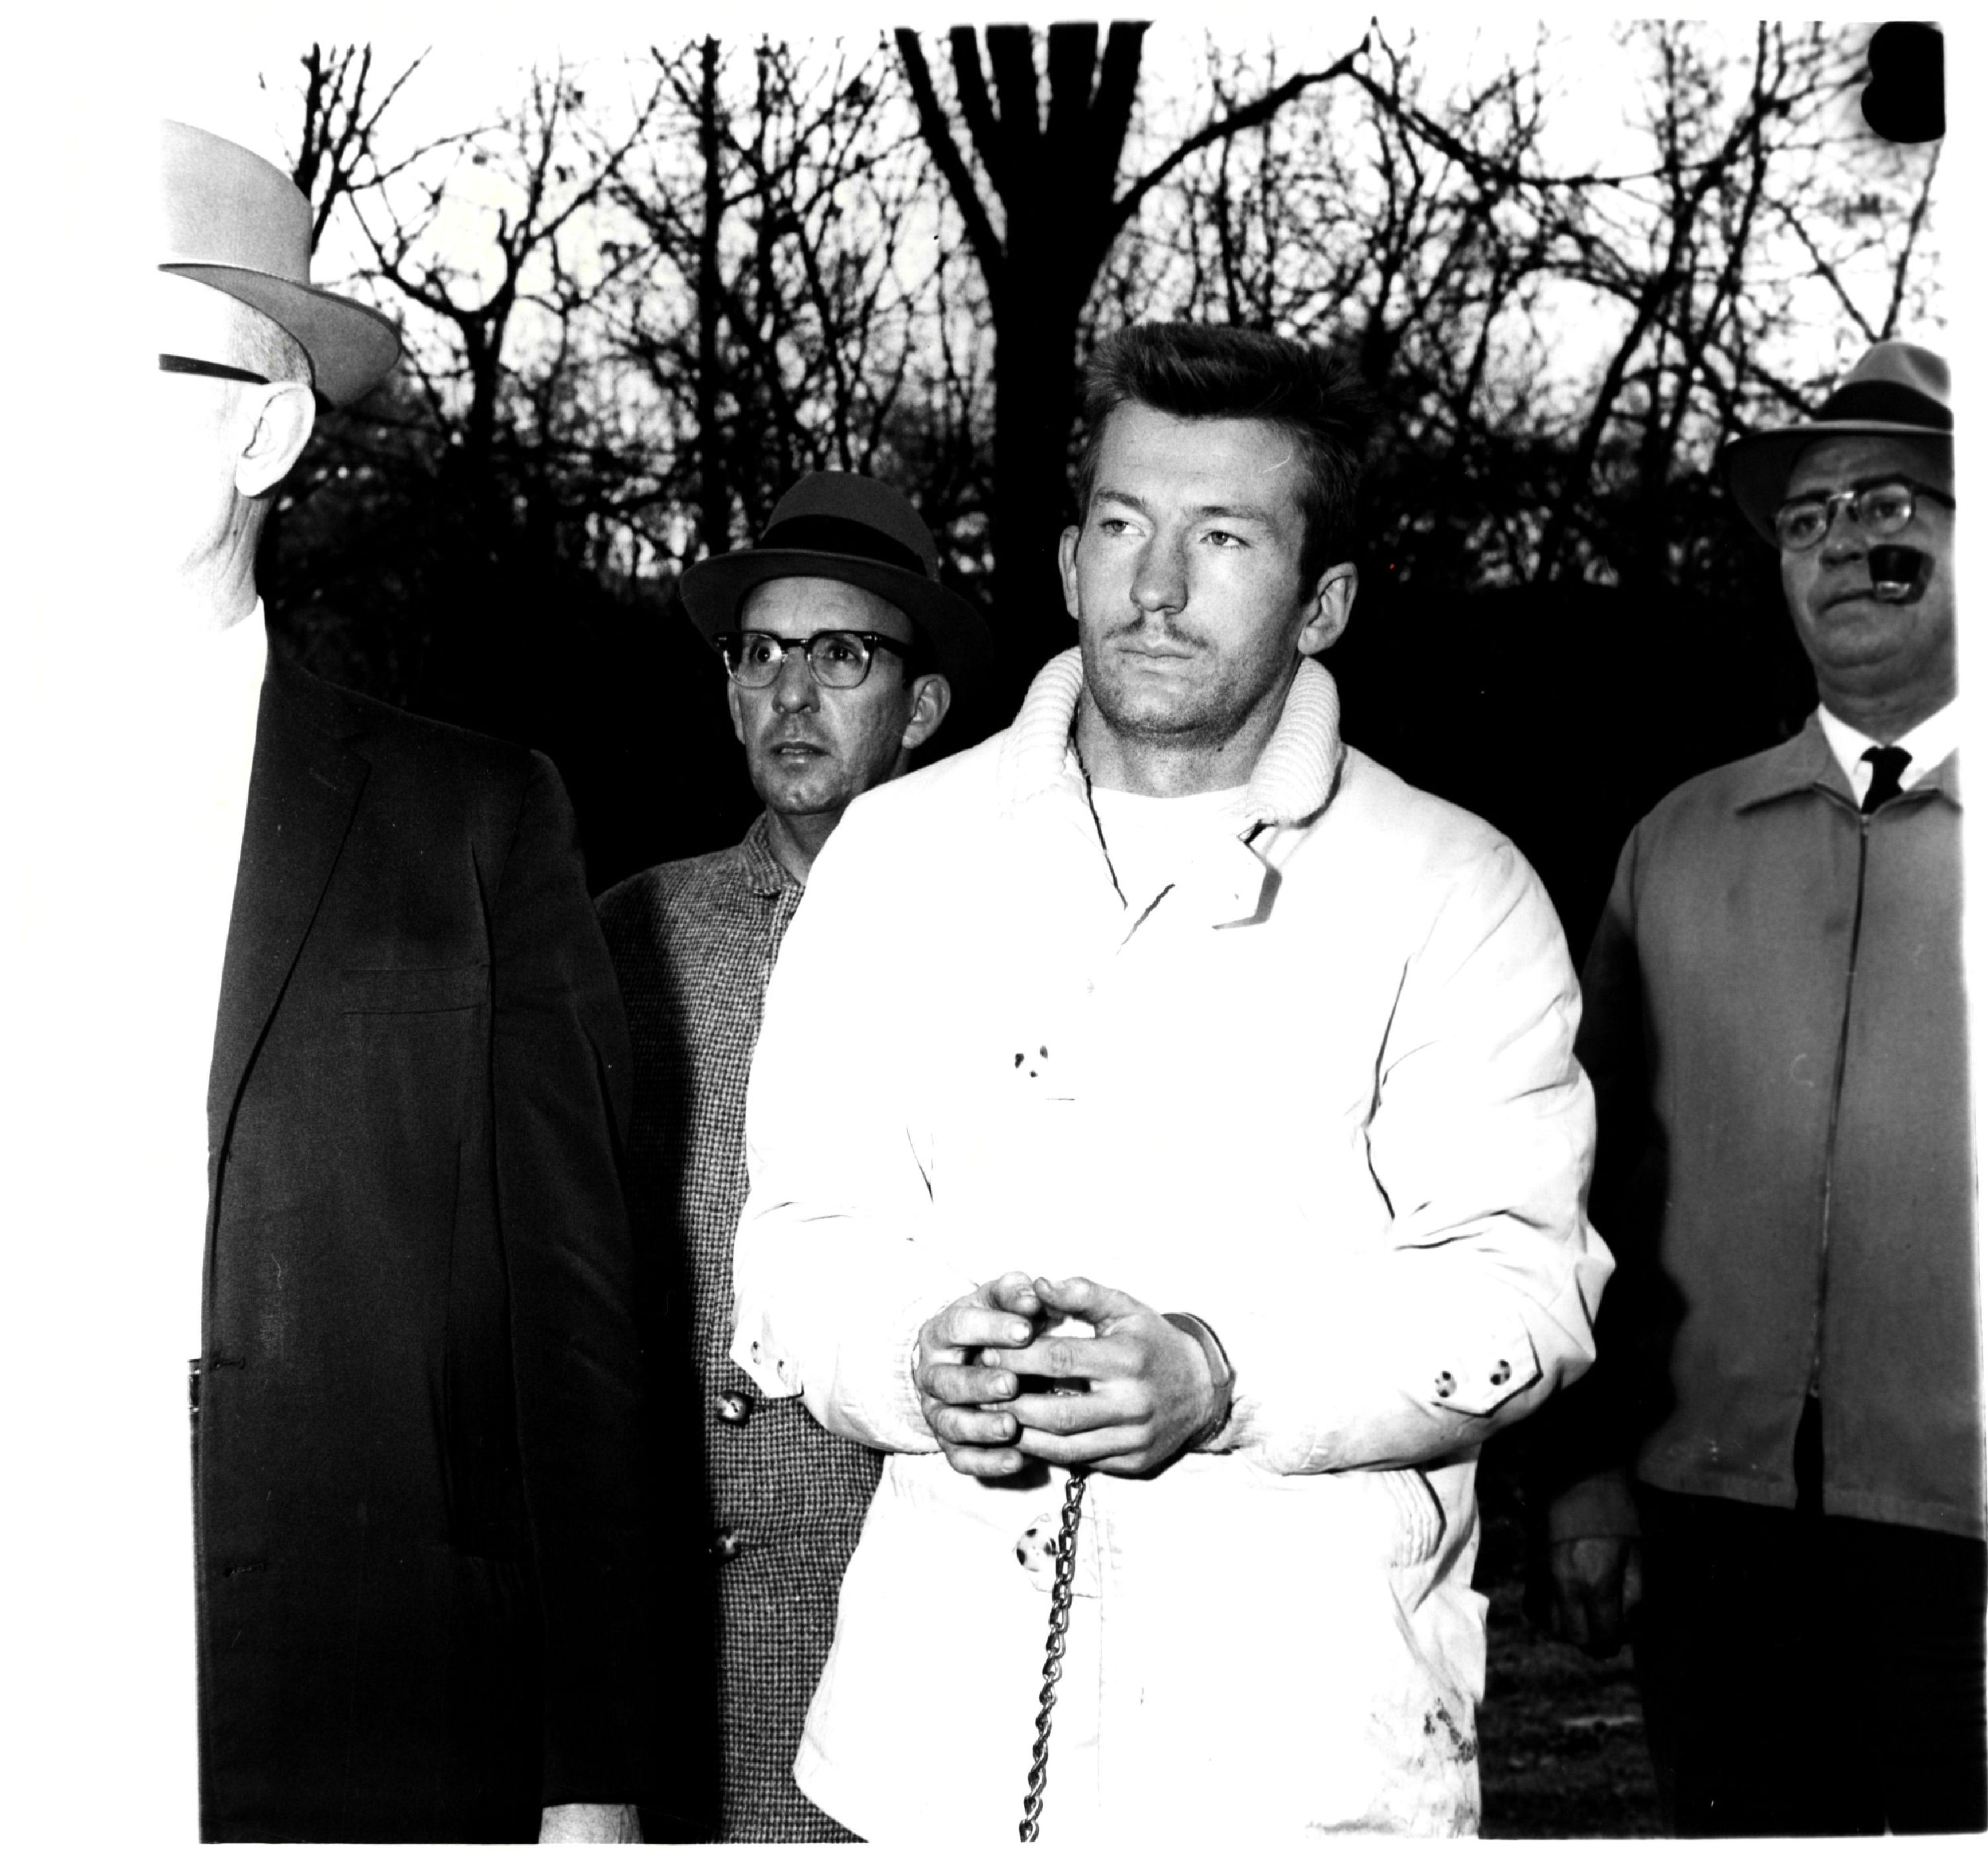 Chester Weger in 1960 at Starved Rock State Park.